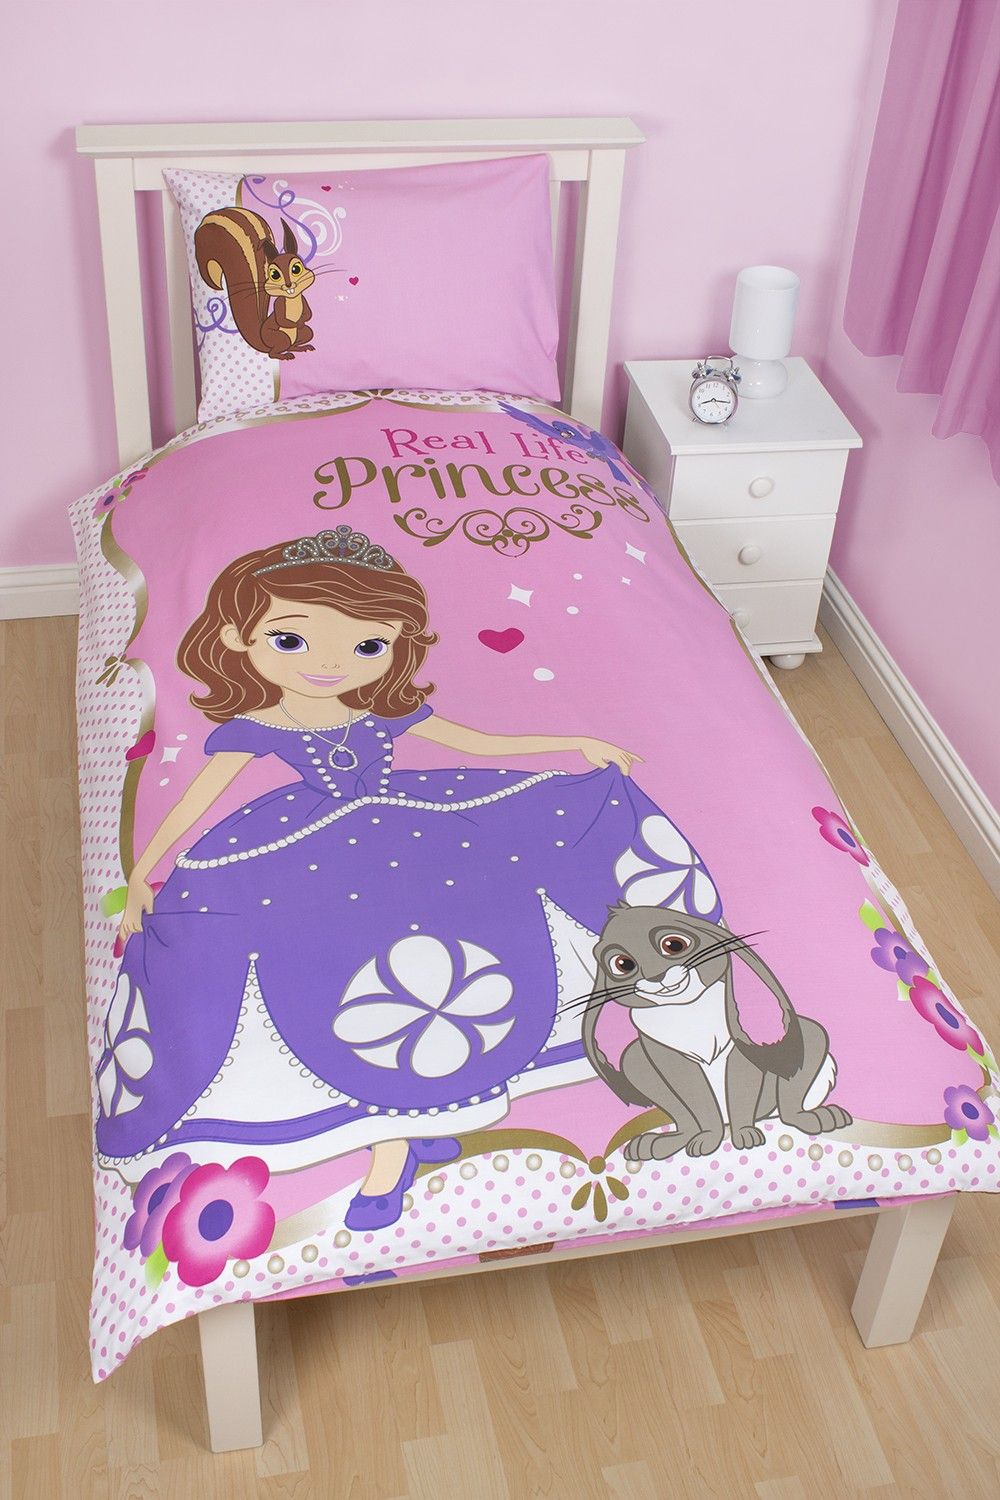 parure de lit de la princesse sofia sofia the first avec housse de couette r versible et jolie. Black Bedroom Furniture Sets. Home Design Ideas